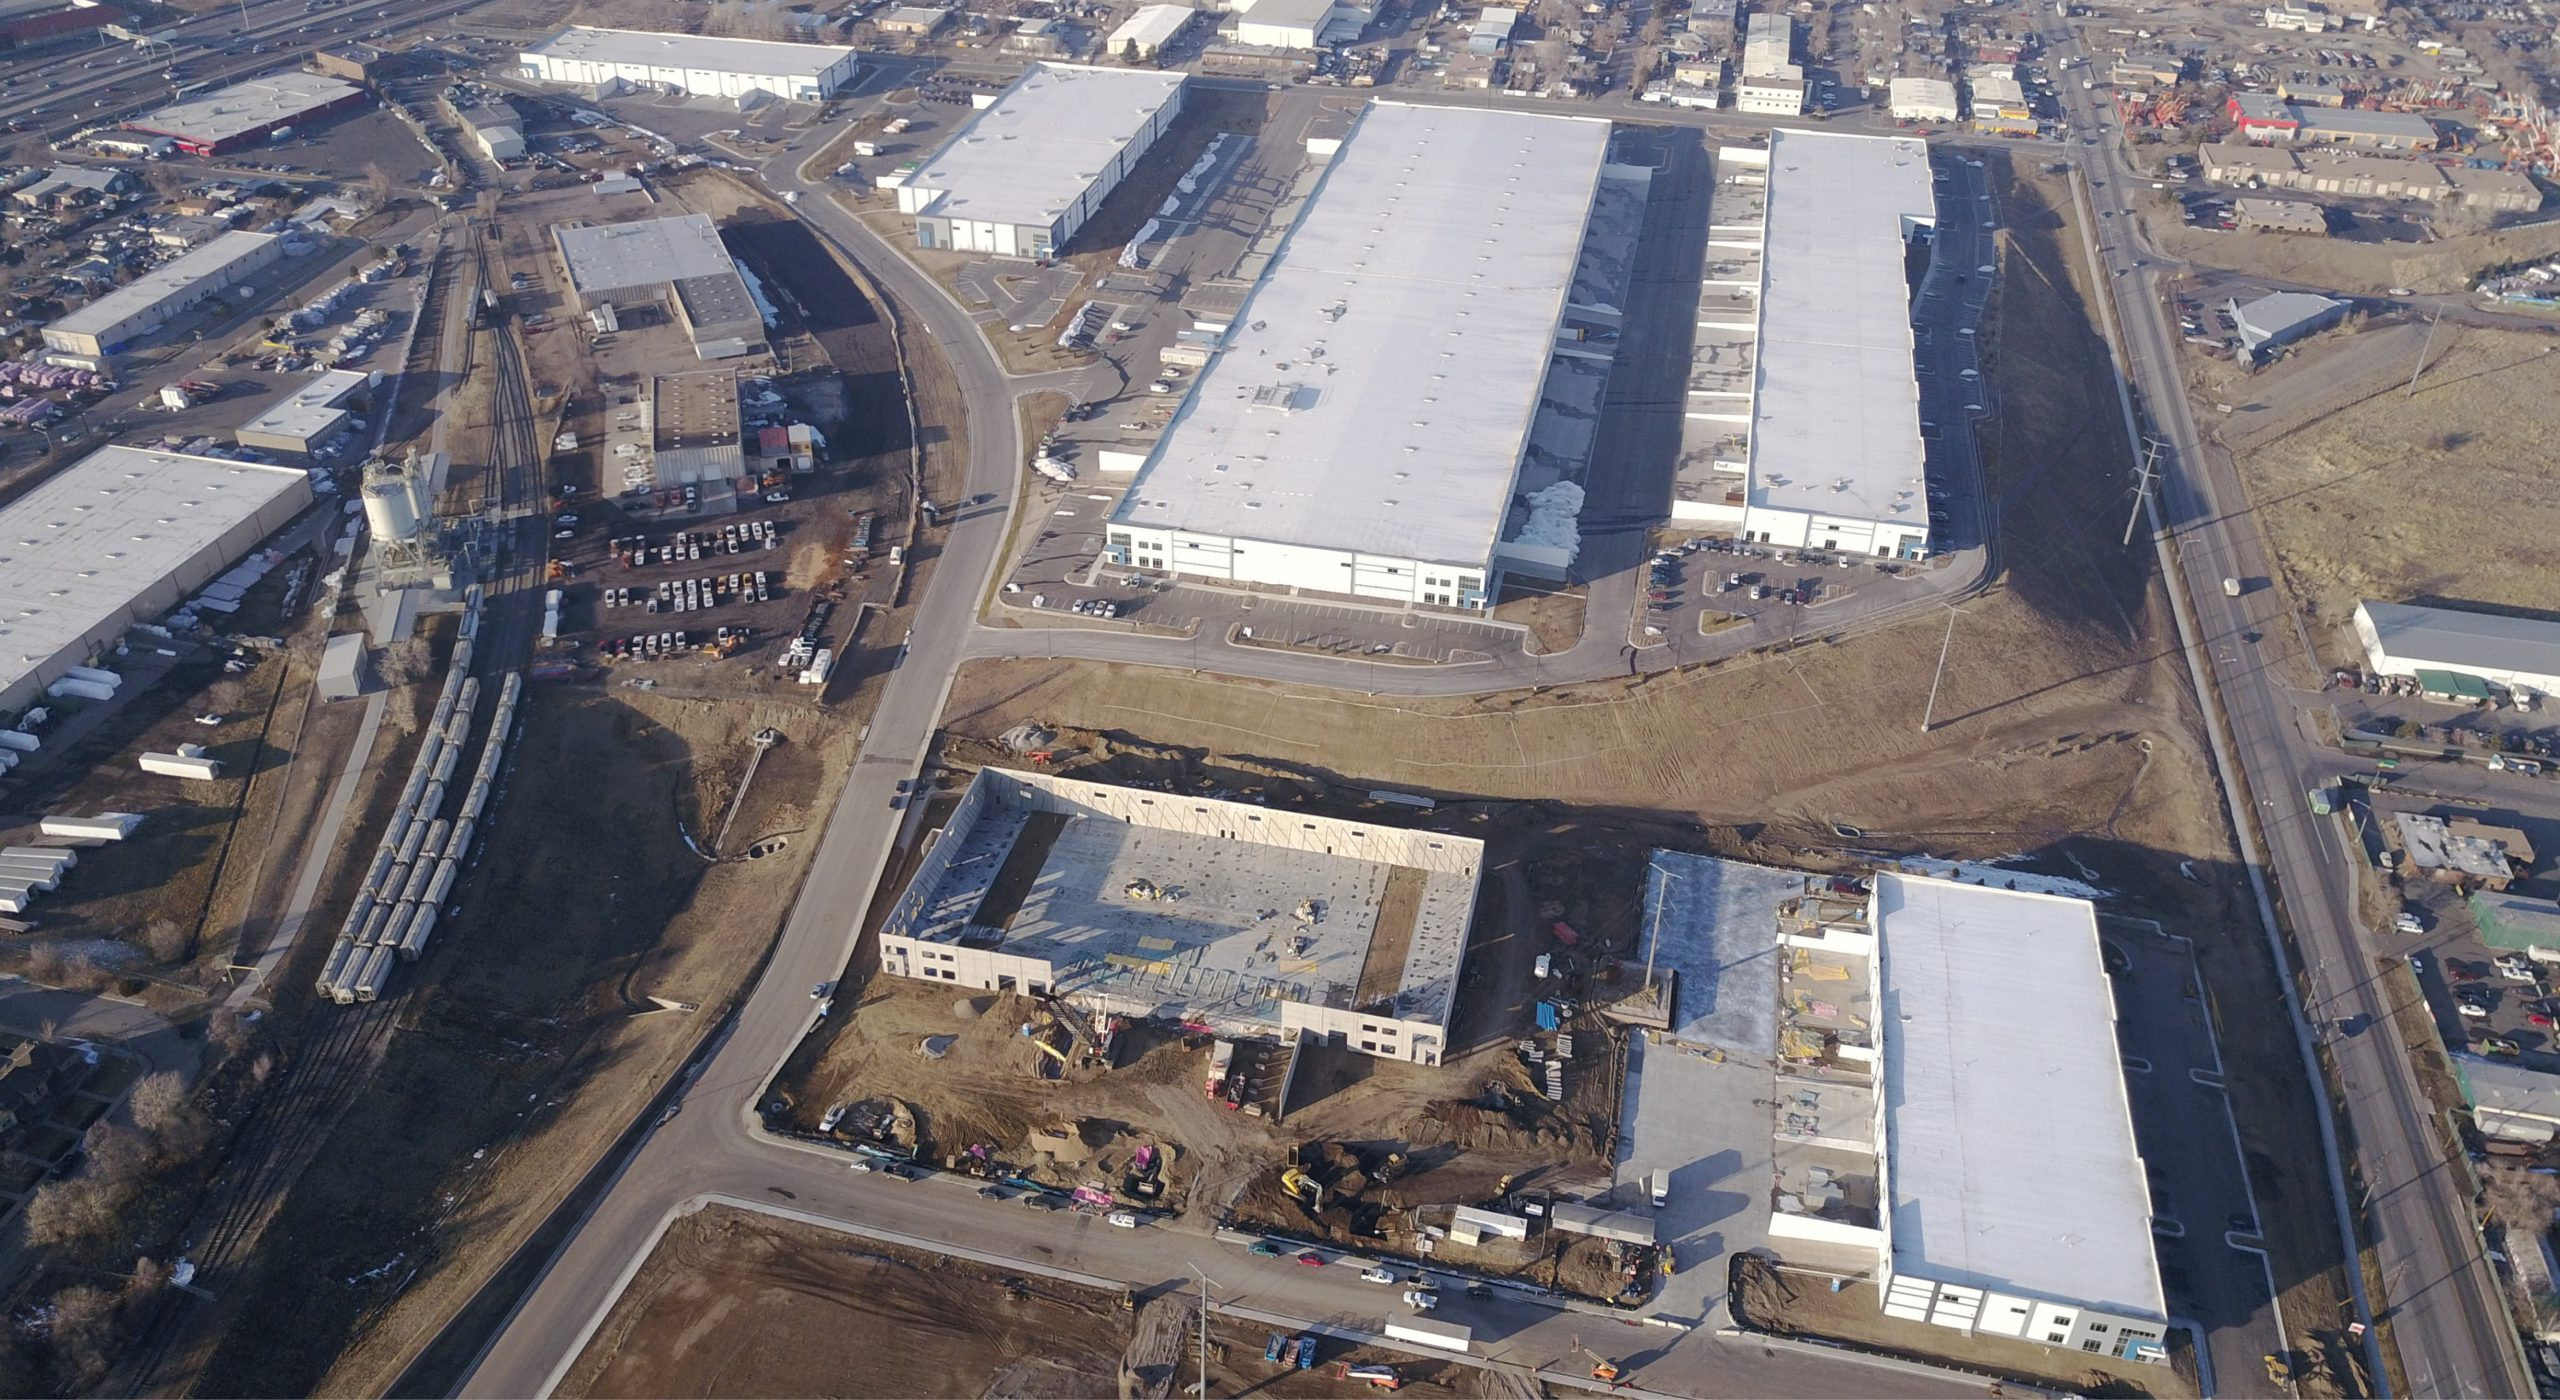 Crossroads Commerce Park industrial development aerial shot